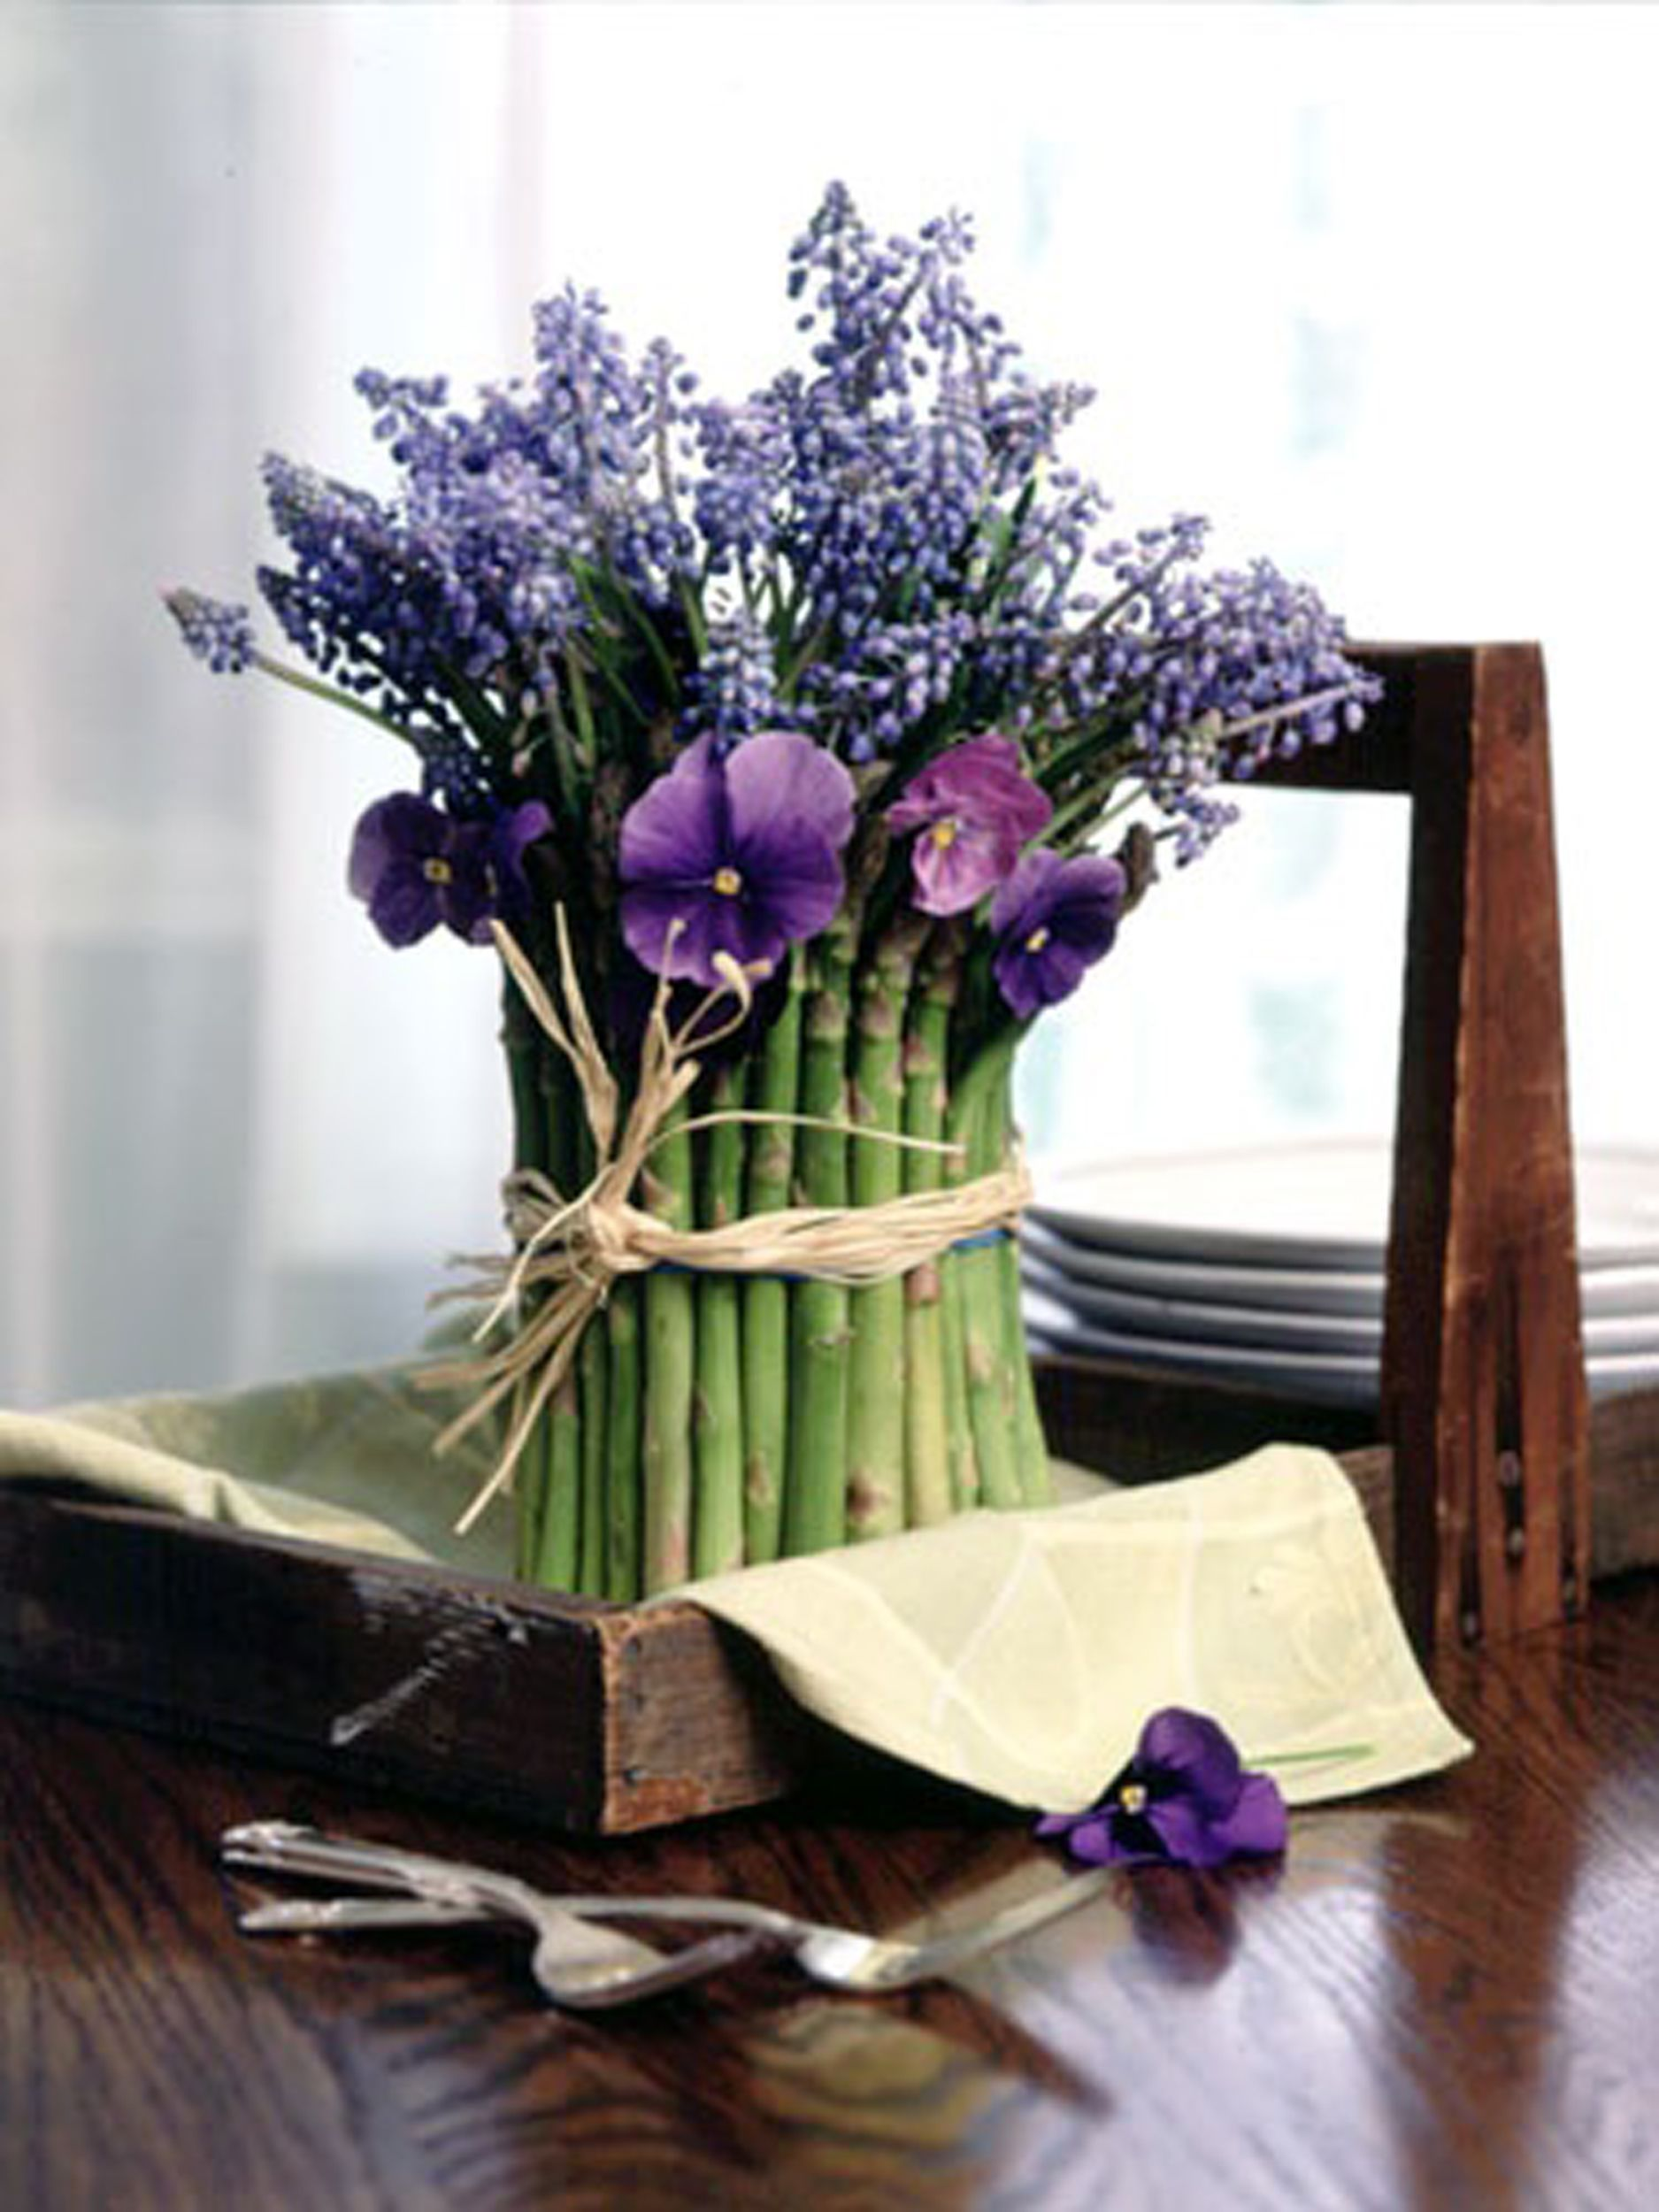 Purple flower arrangements pinterest flower arrangements unique flower arrangements asparagus grape hyacinth and pansies how lovely izmirmasajfo Gallery